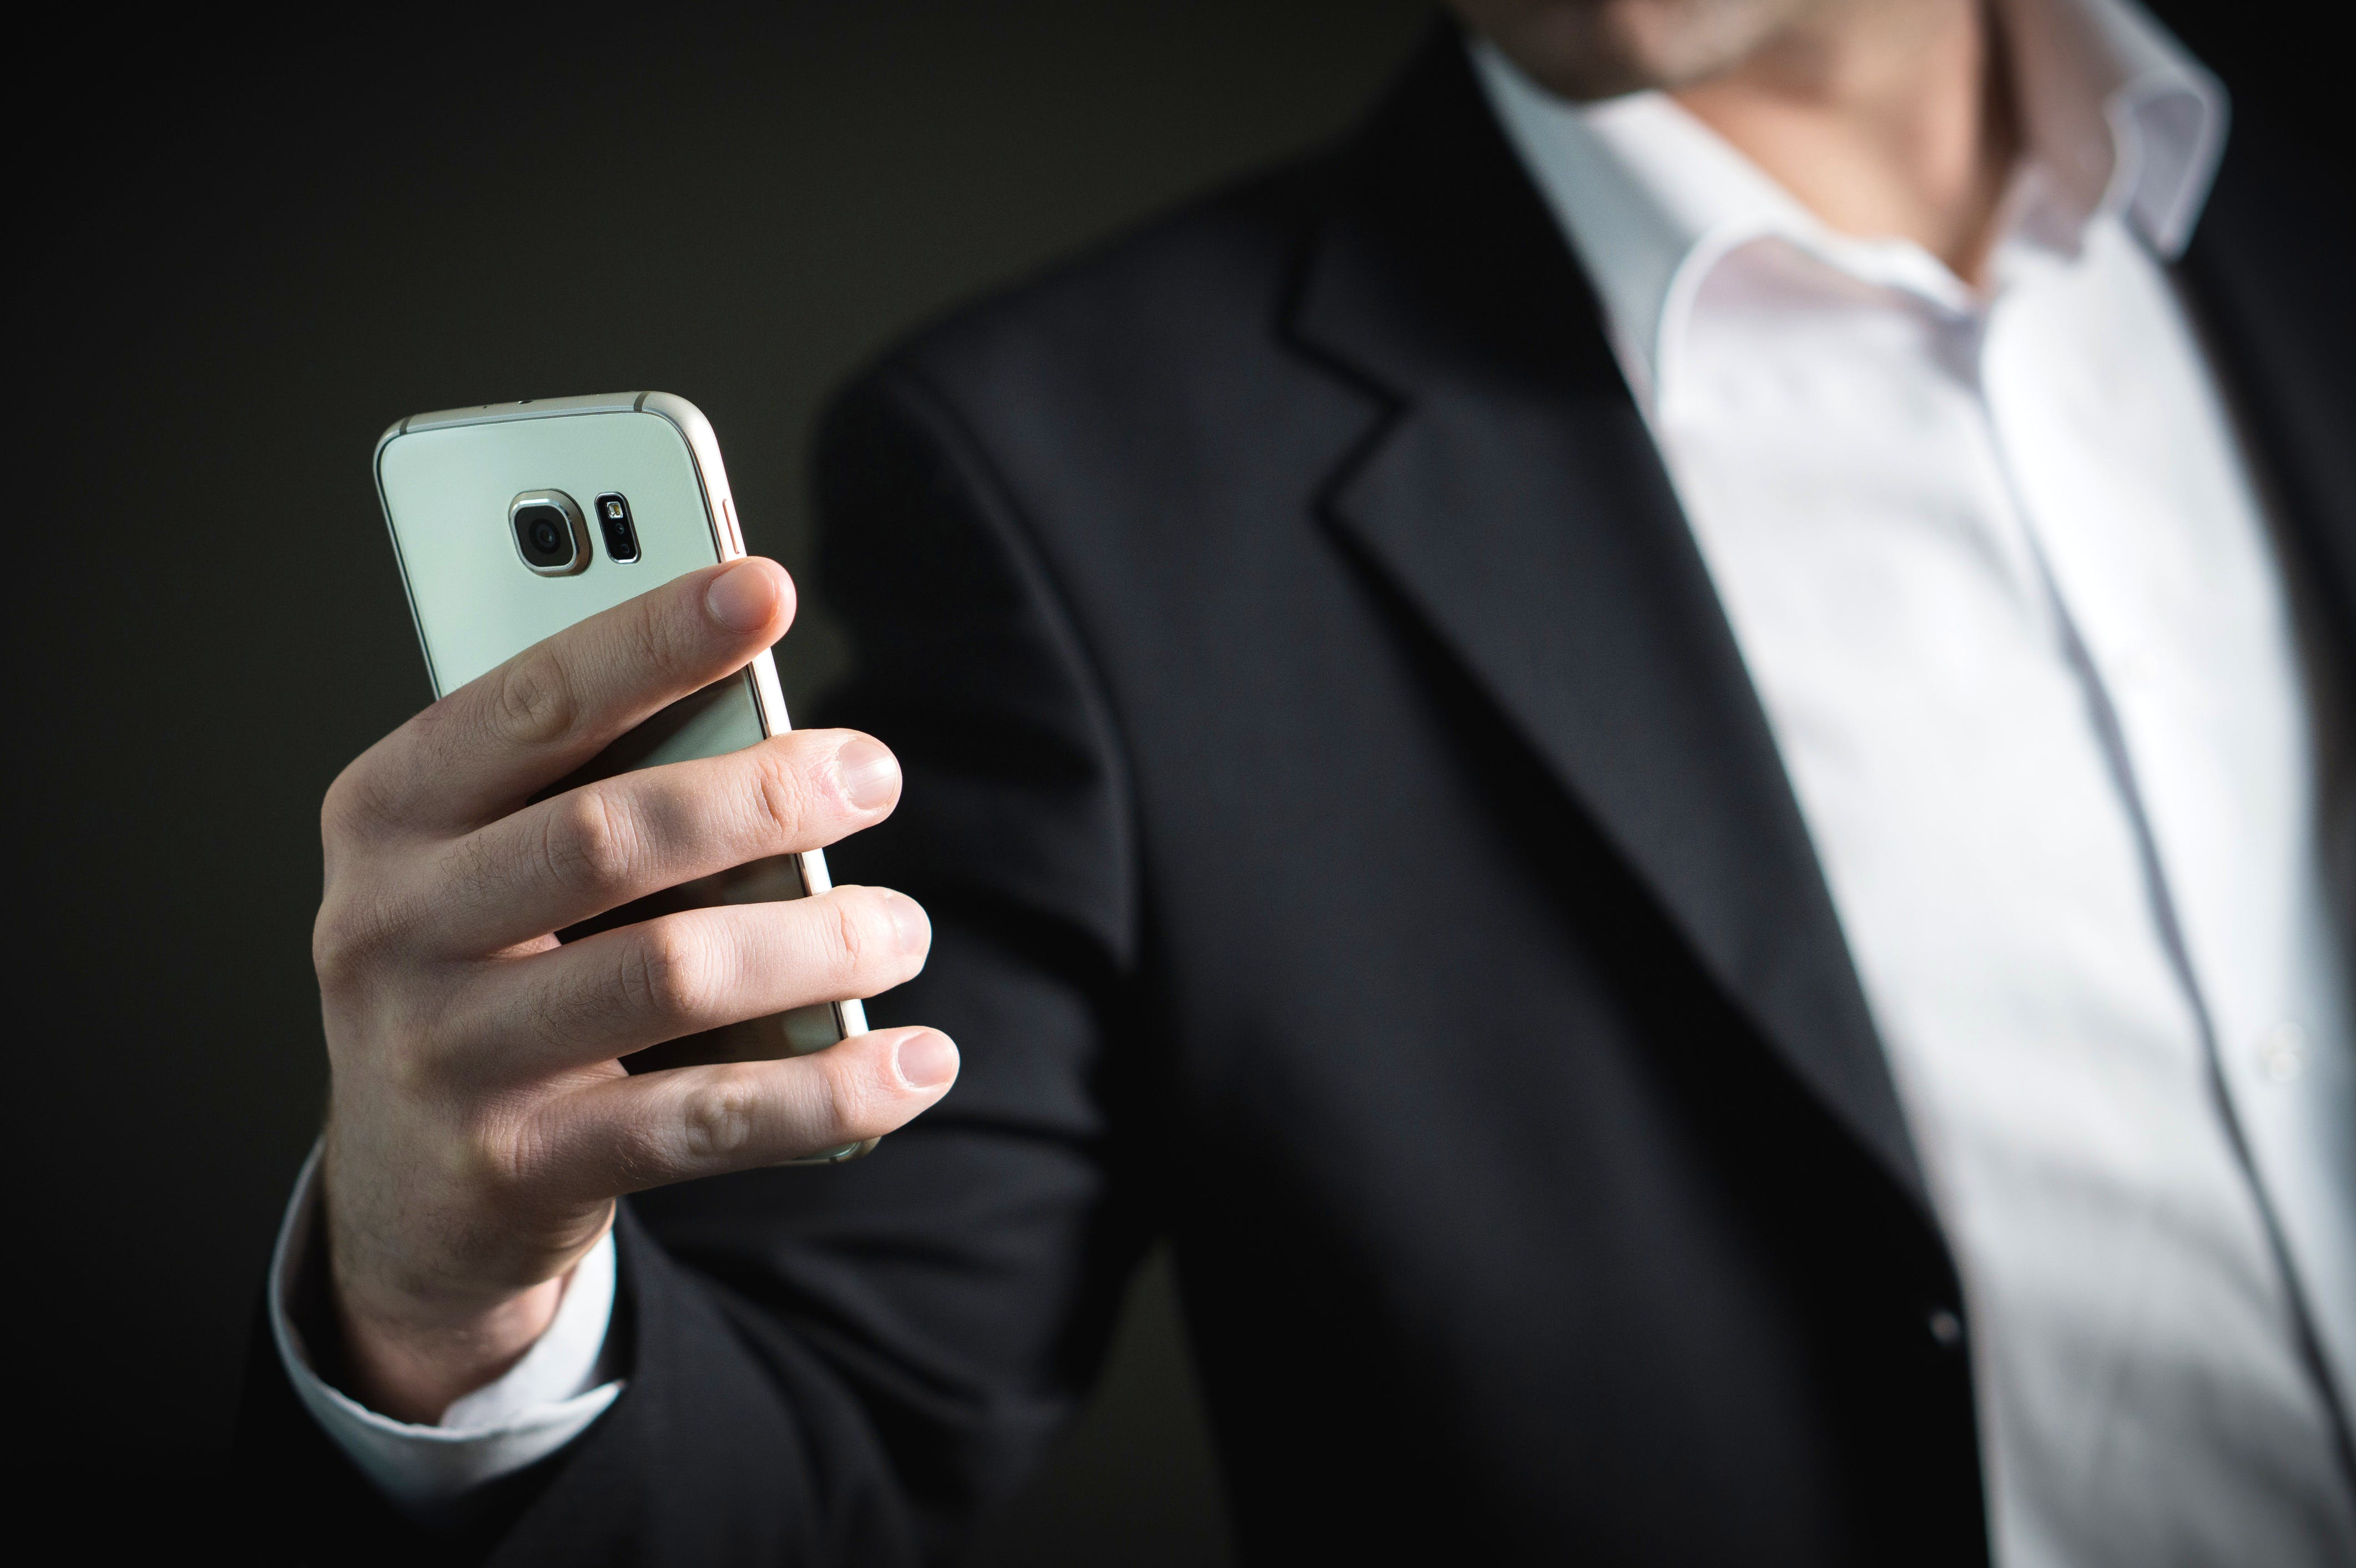 Mobile phone,Gadget,Suit,Smartphone,Formal wear,Finger,Communication Device,Technology,Electronic device,Hand